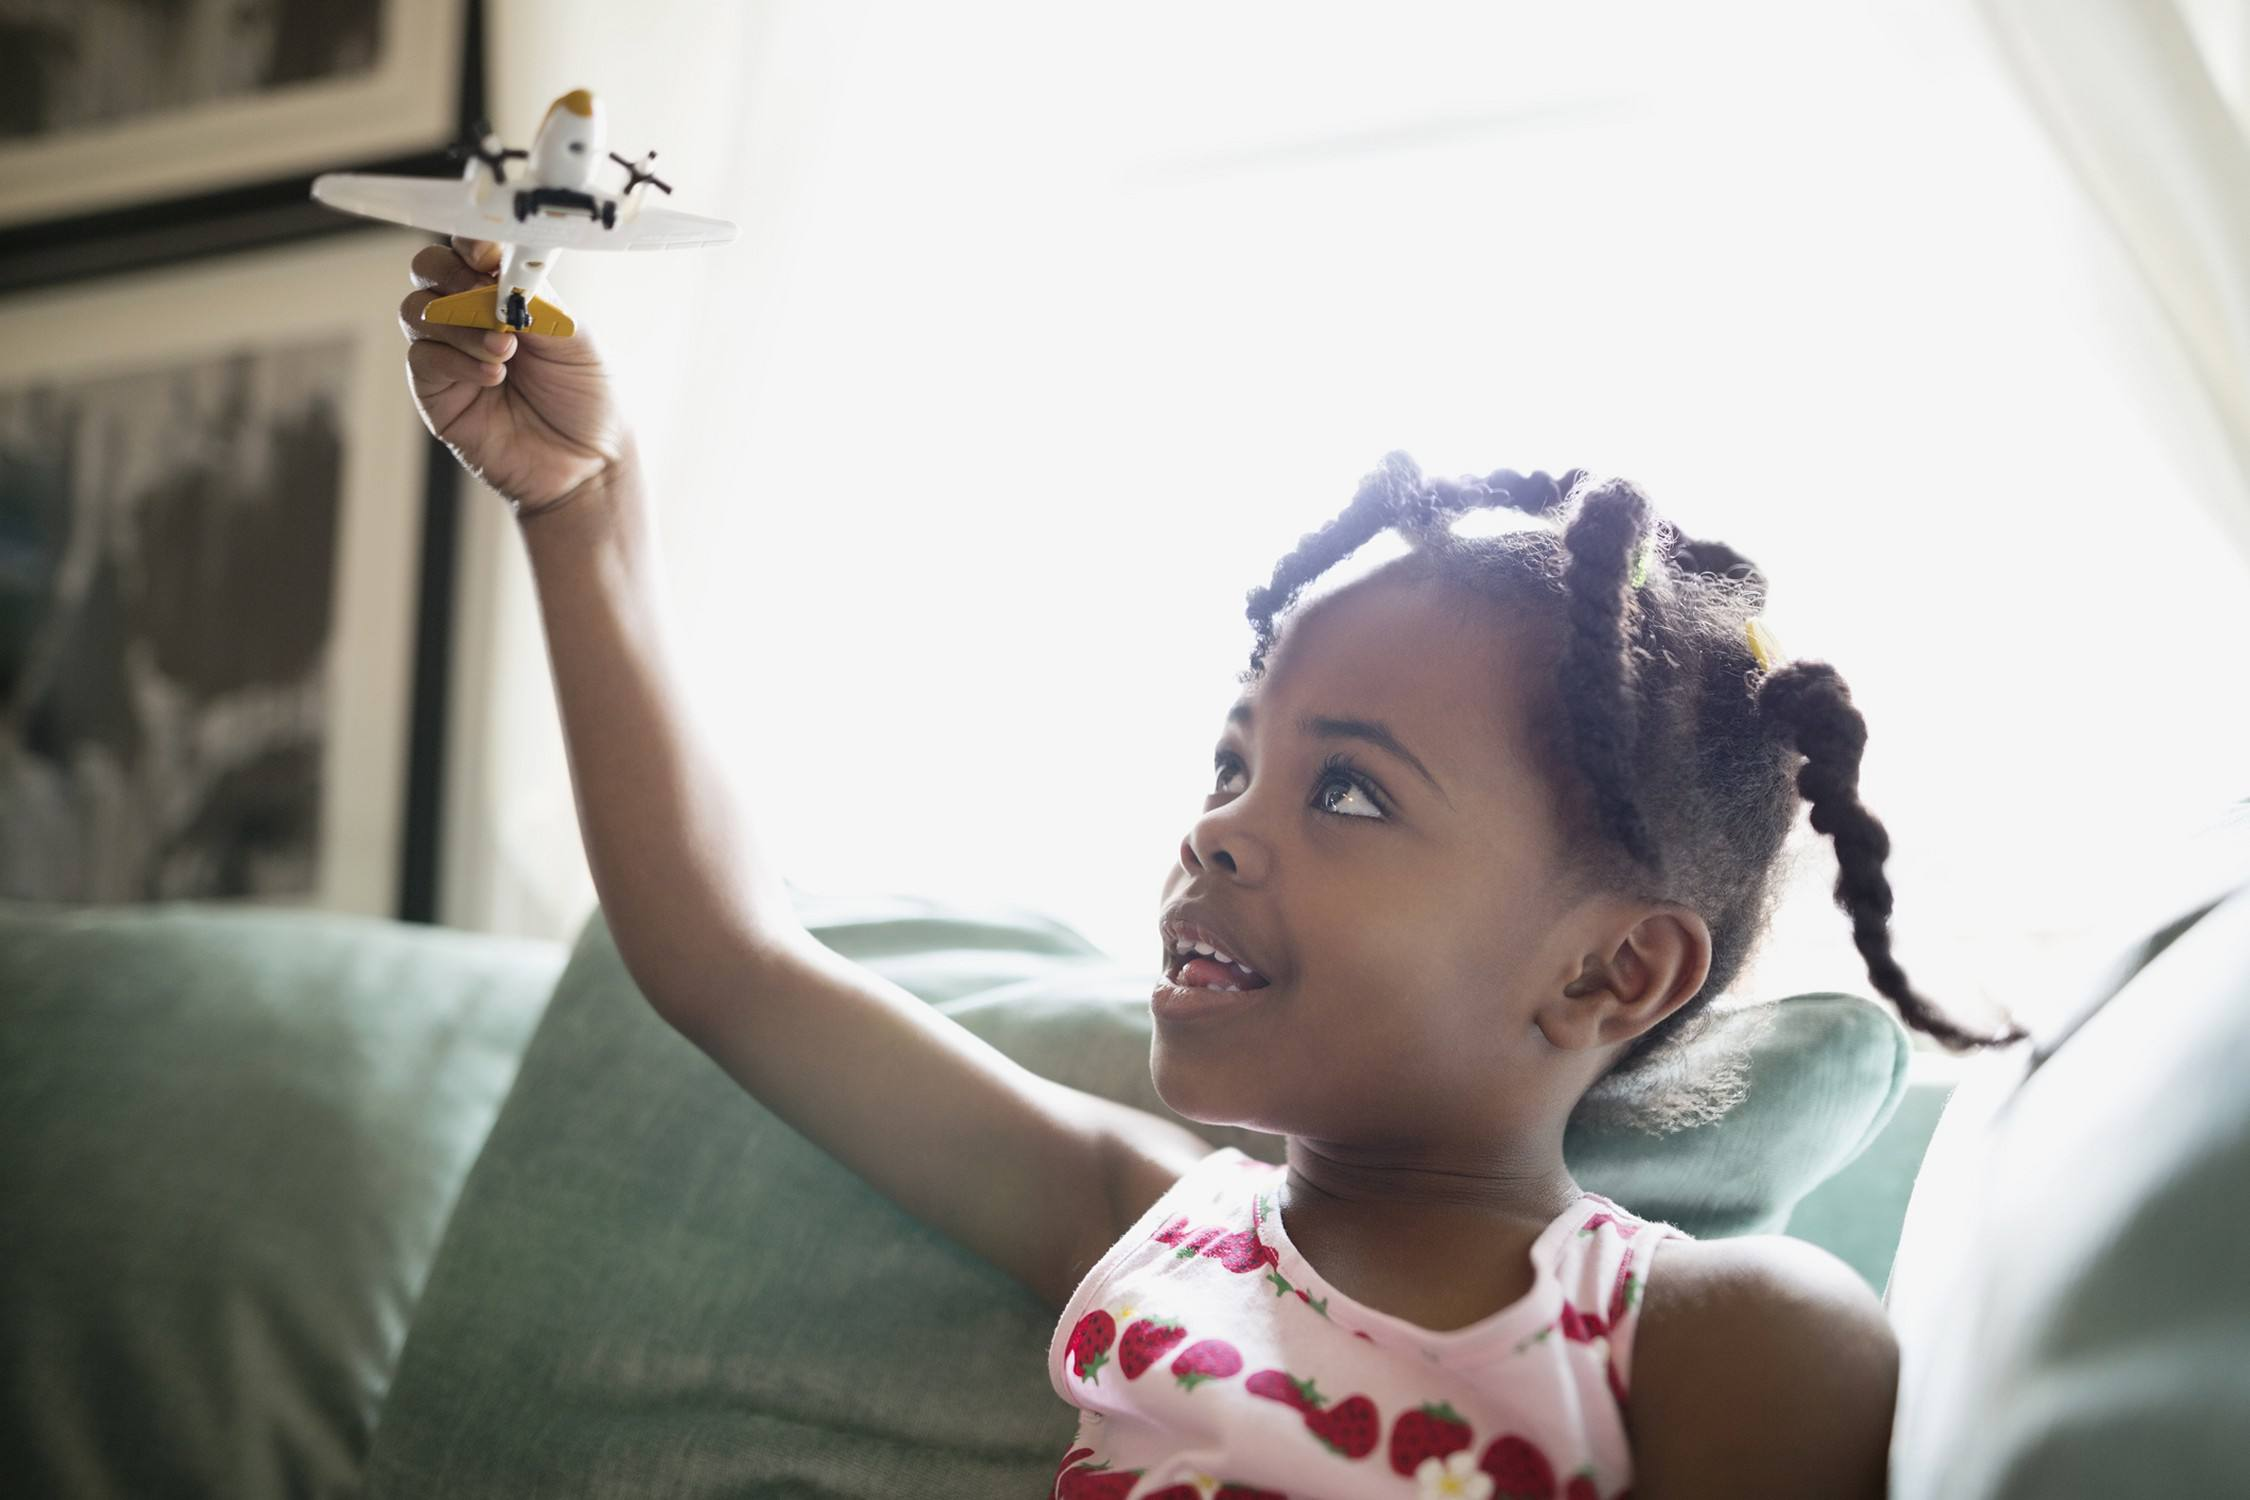 child playing with a toy airplane